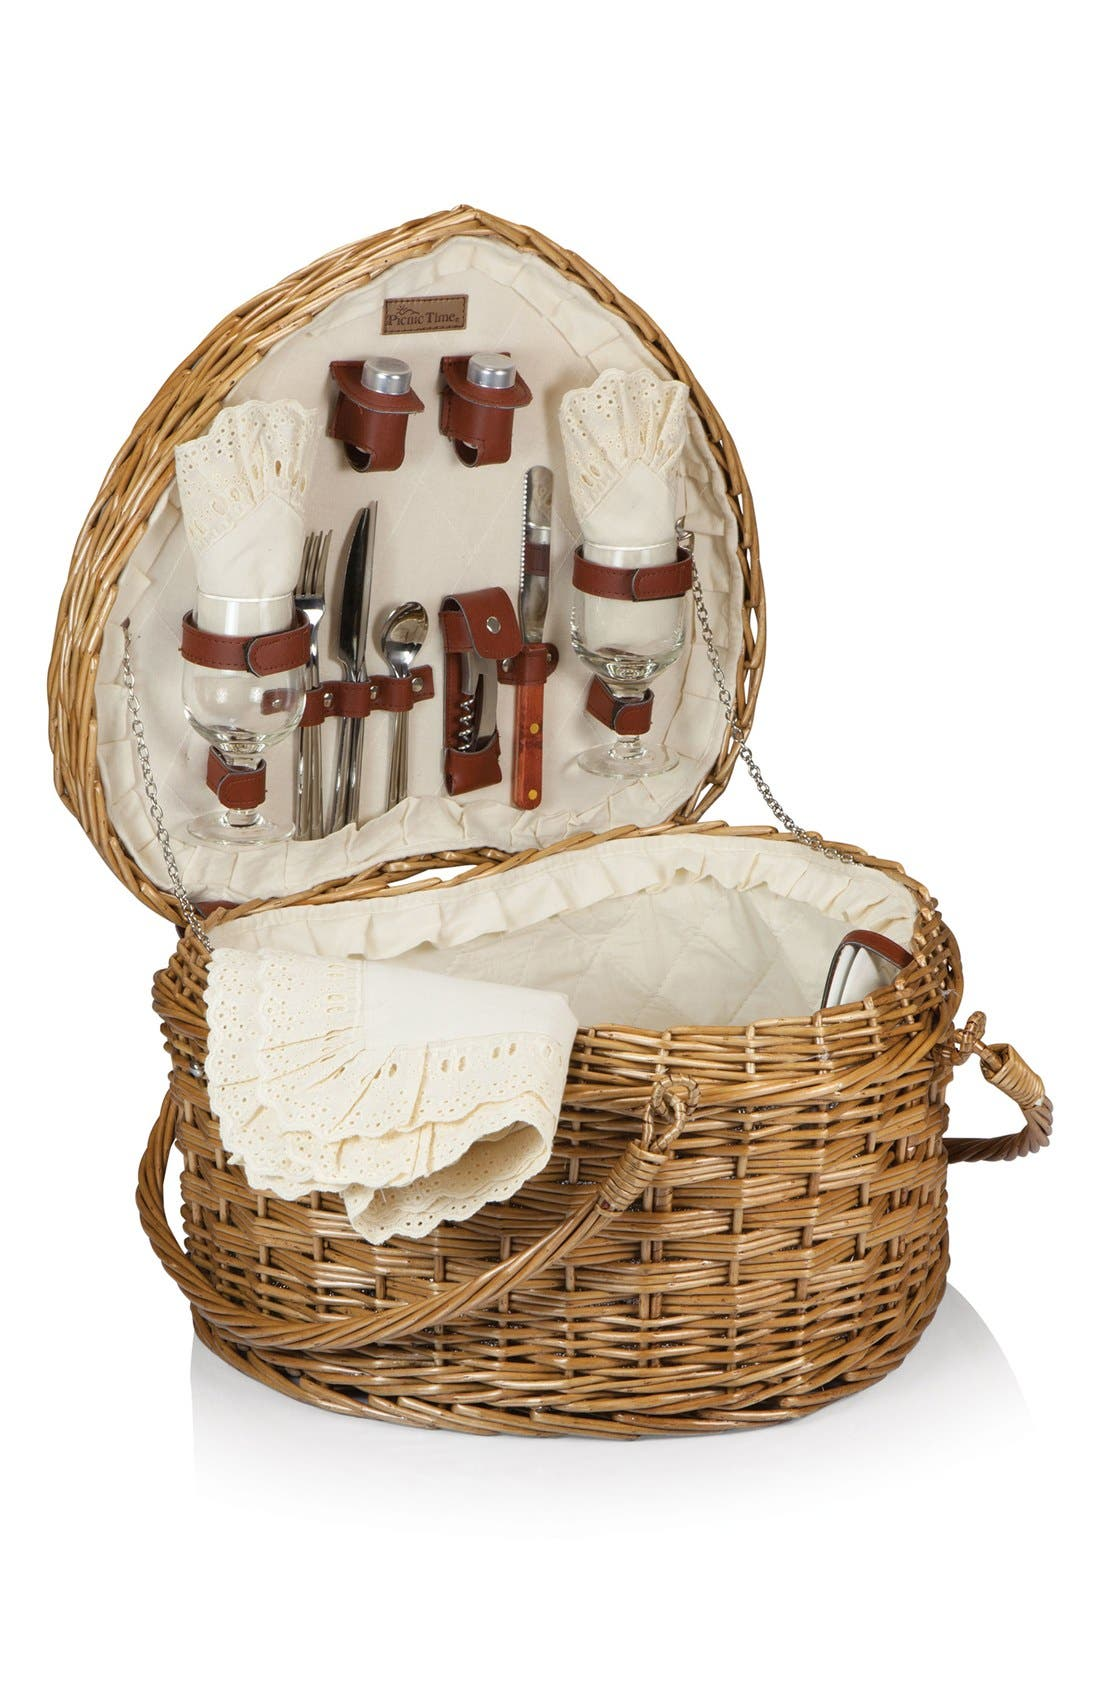 Main Image - Picnic Time Heart Shaped Wicker Picnic Basket